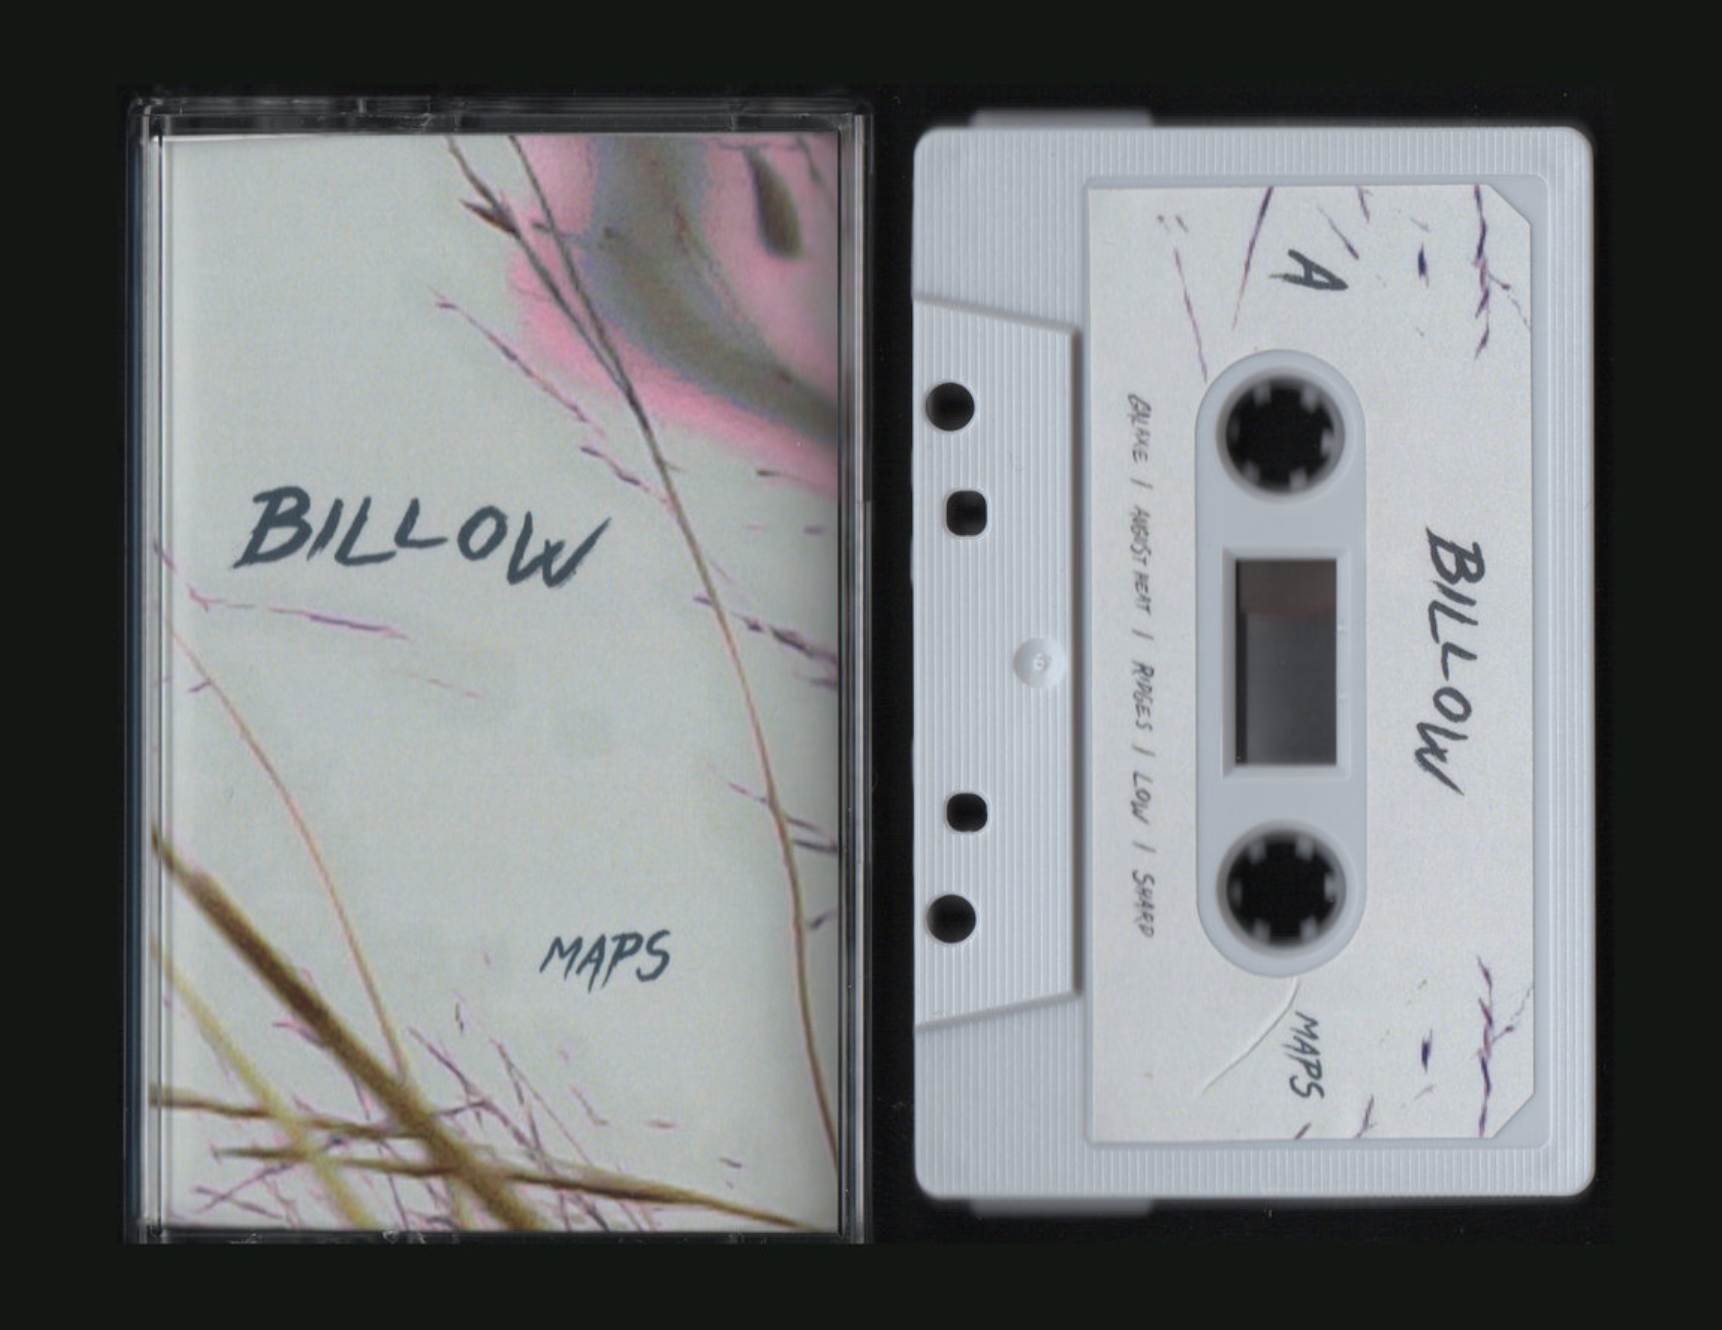 Billow - Maps (Z Tapes)